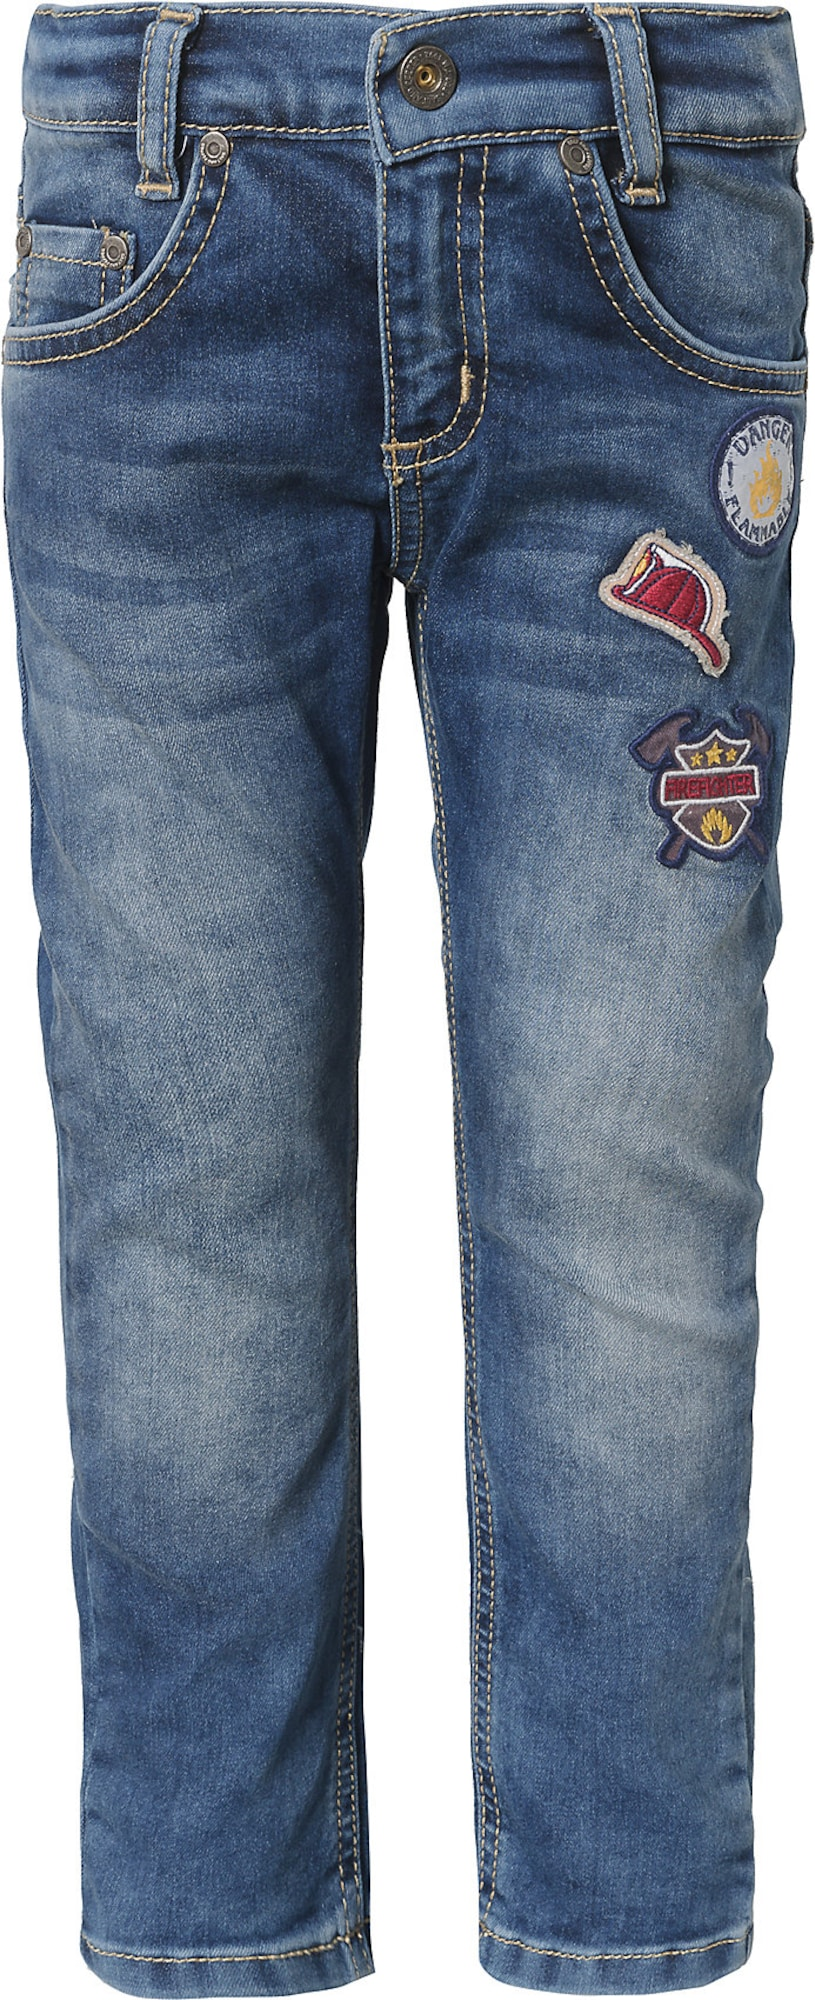 Miniboyhosen - Jeans mit Patches - Onlineshop ABOUT YOU